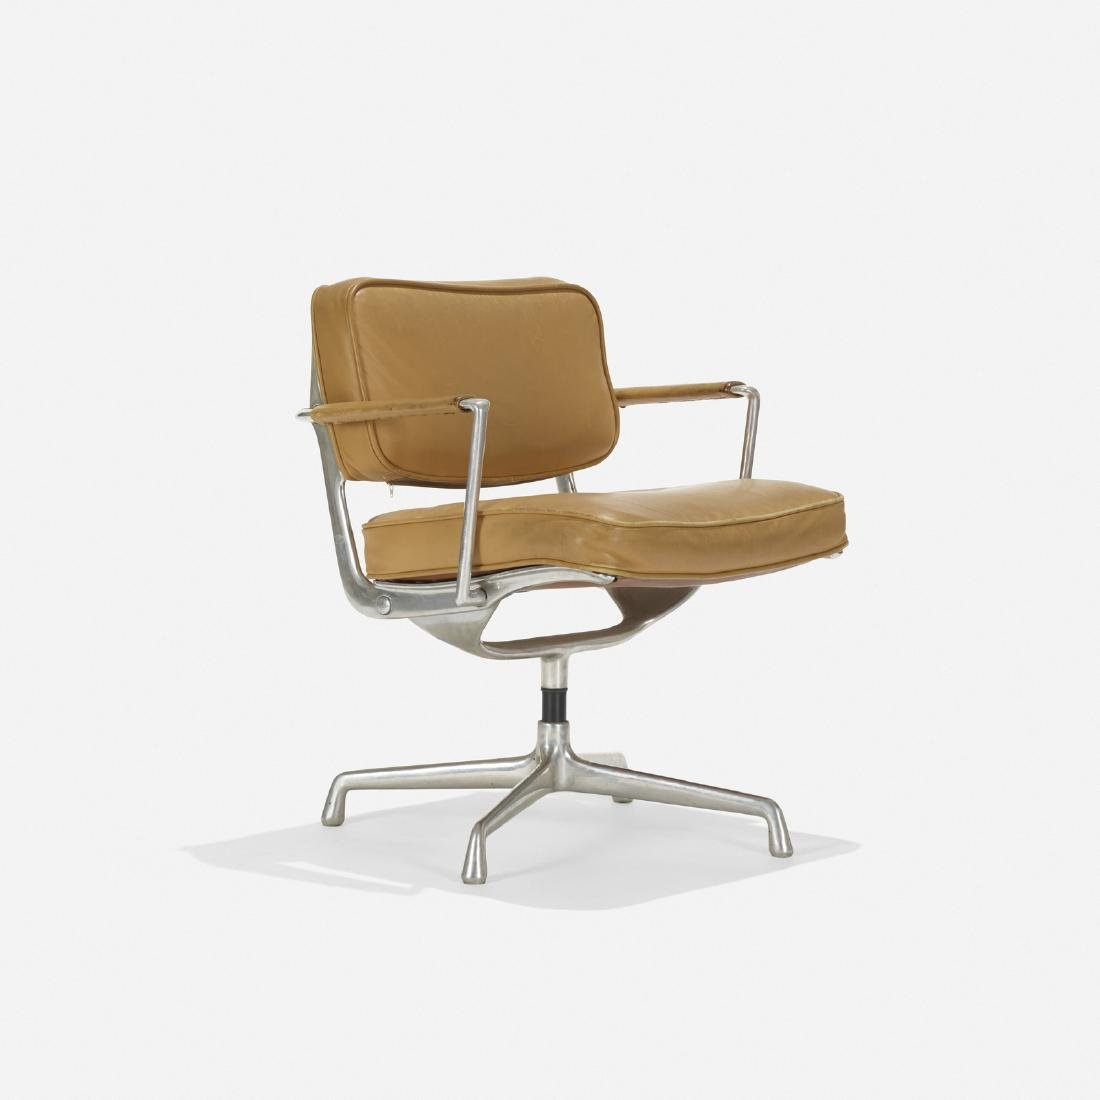 Charles and Ray Eames, Intermediate Desk chair, ES102